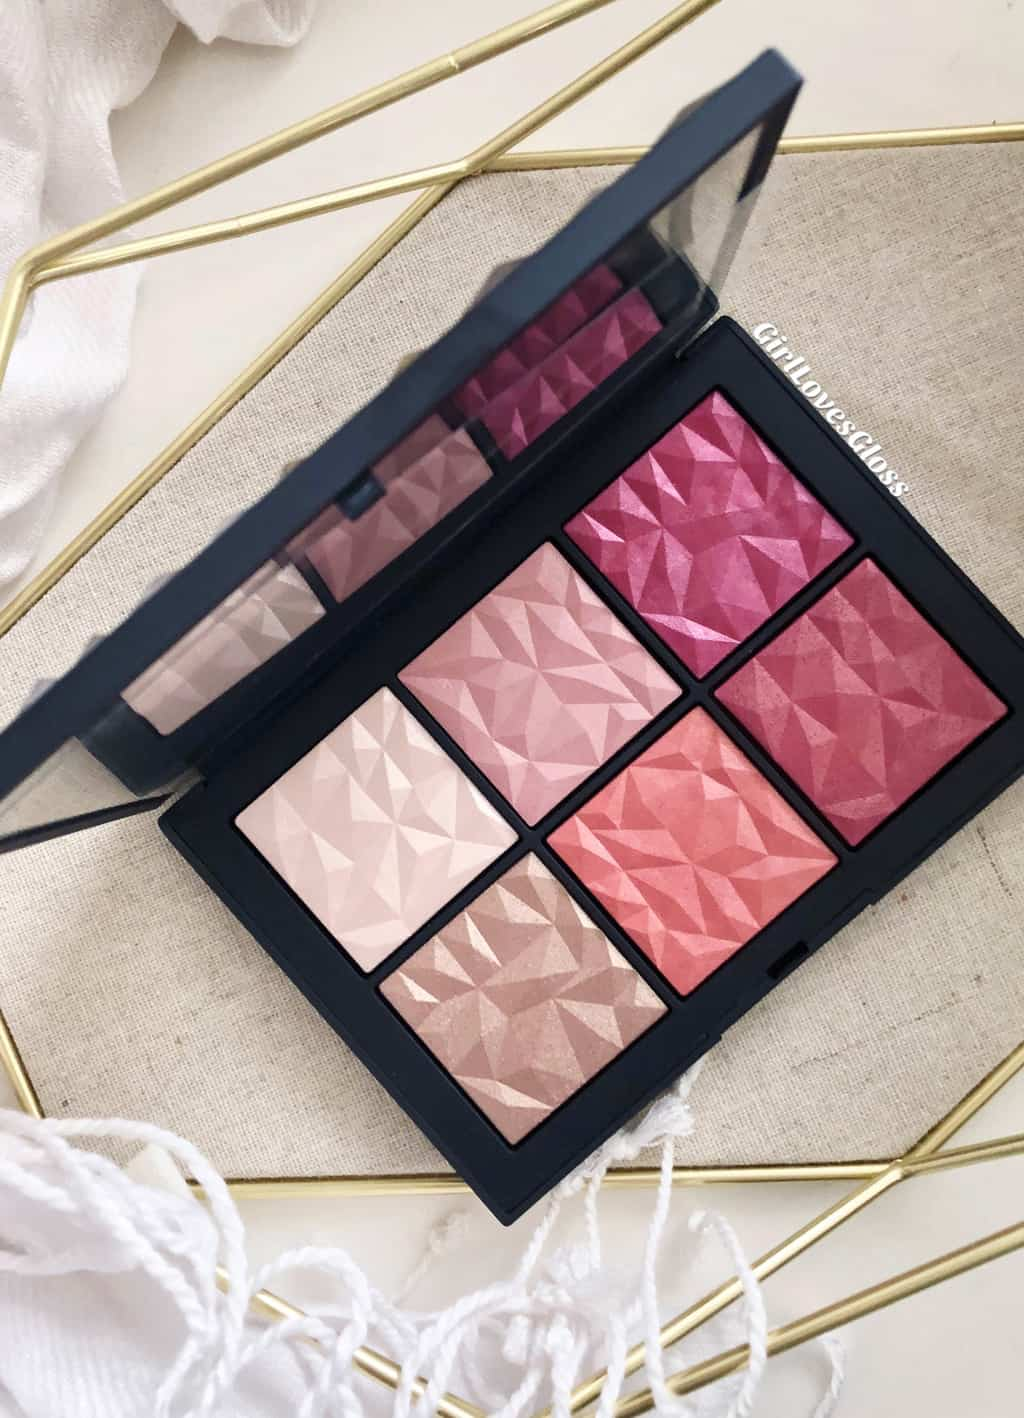 Blush Lovers Rejoice | Nars Holiday 2018 Hot Tryst Blush Palette is Here